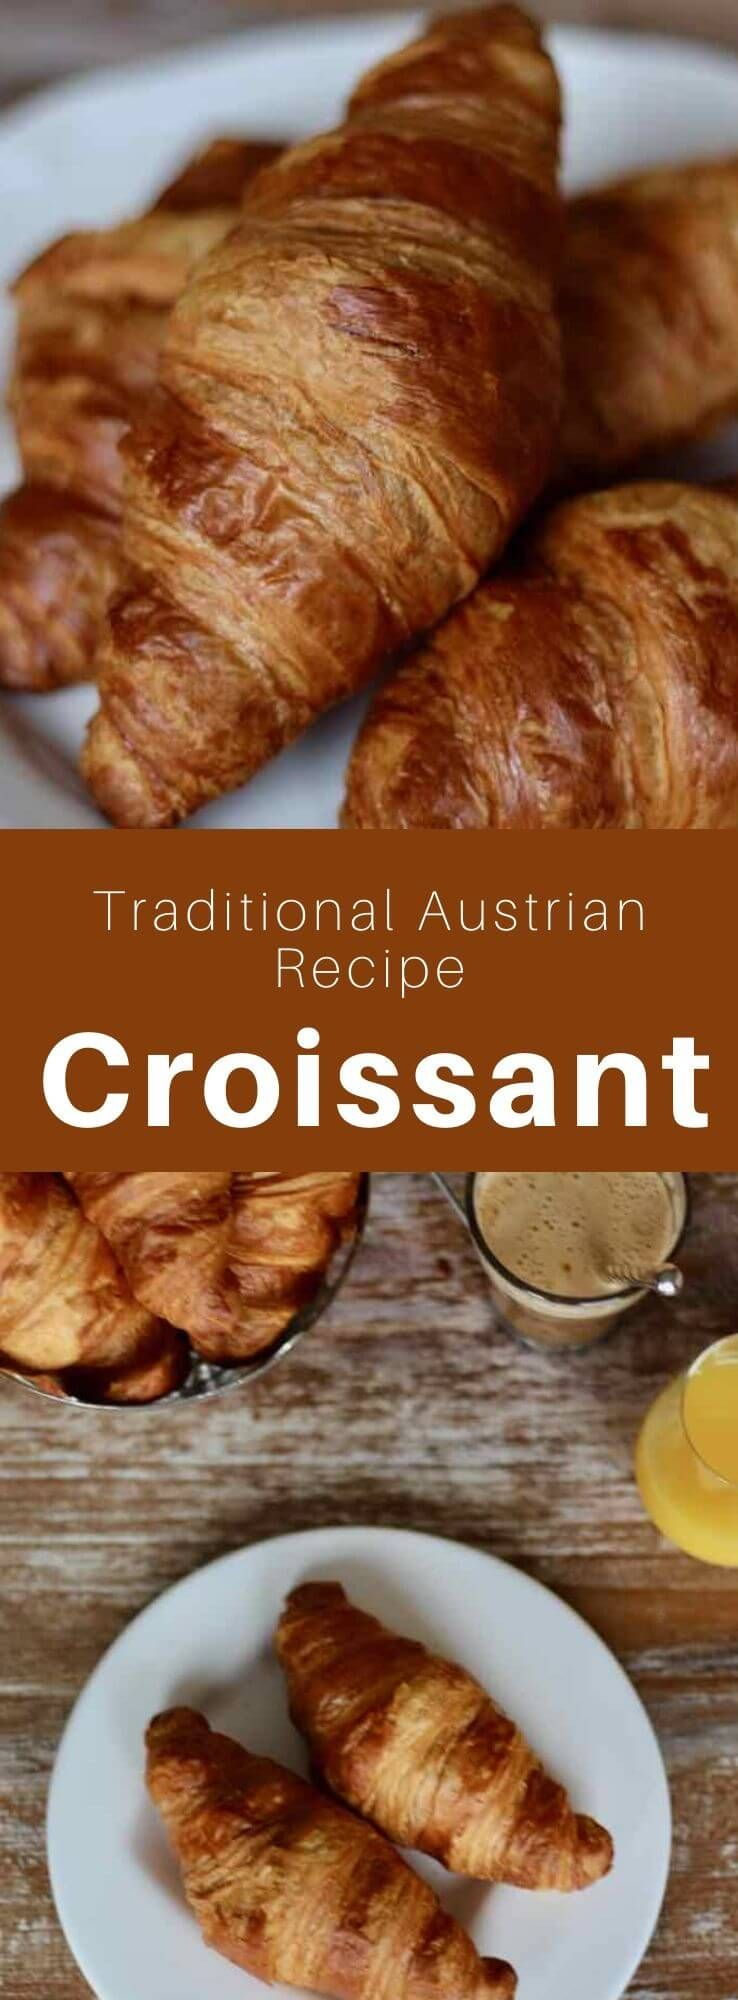 The croissant is a pastry made with leavened puff pastry ...